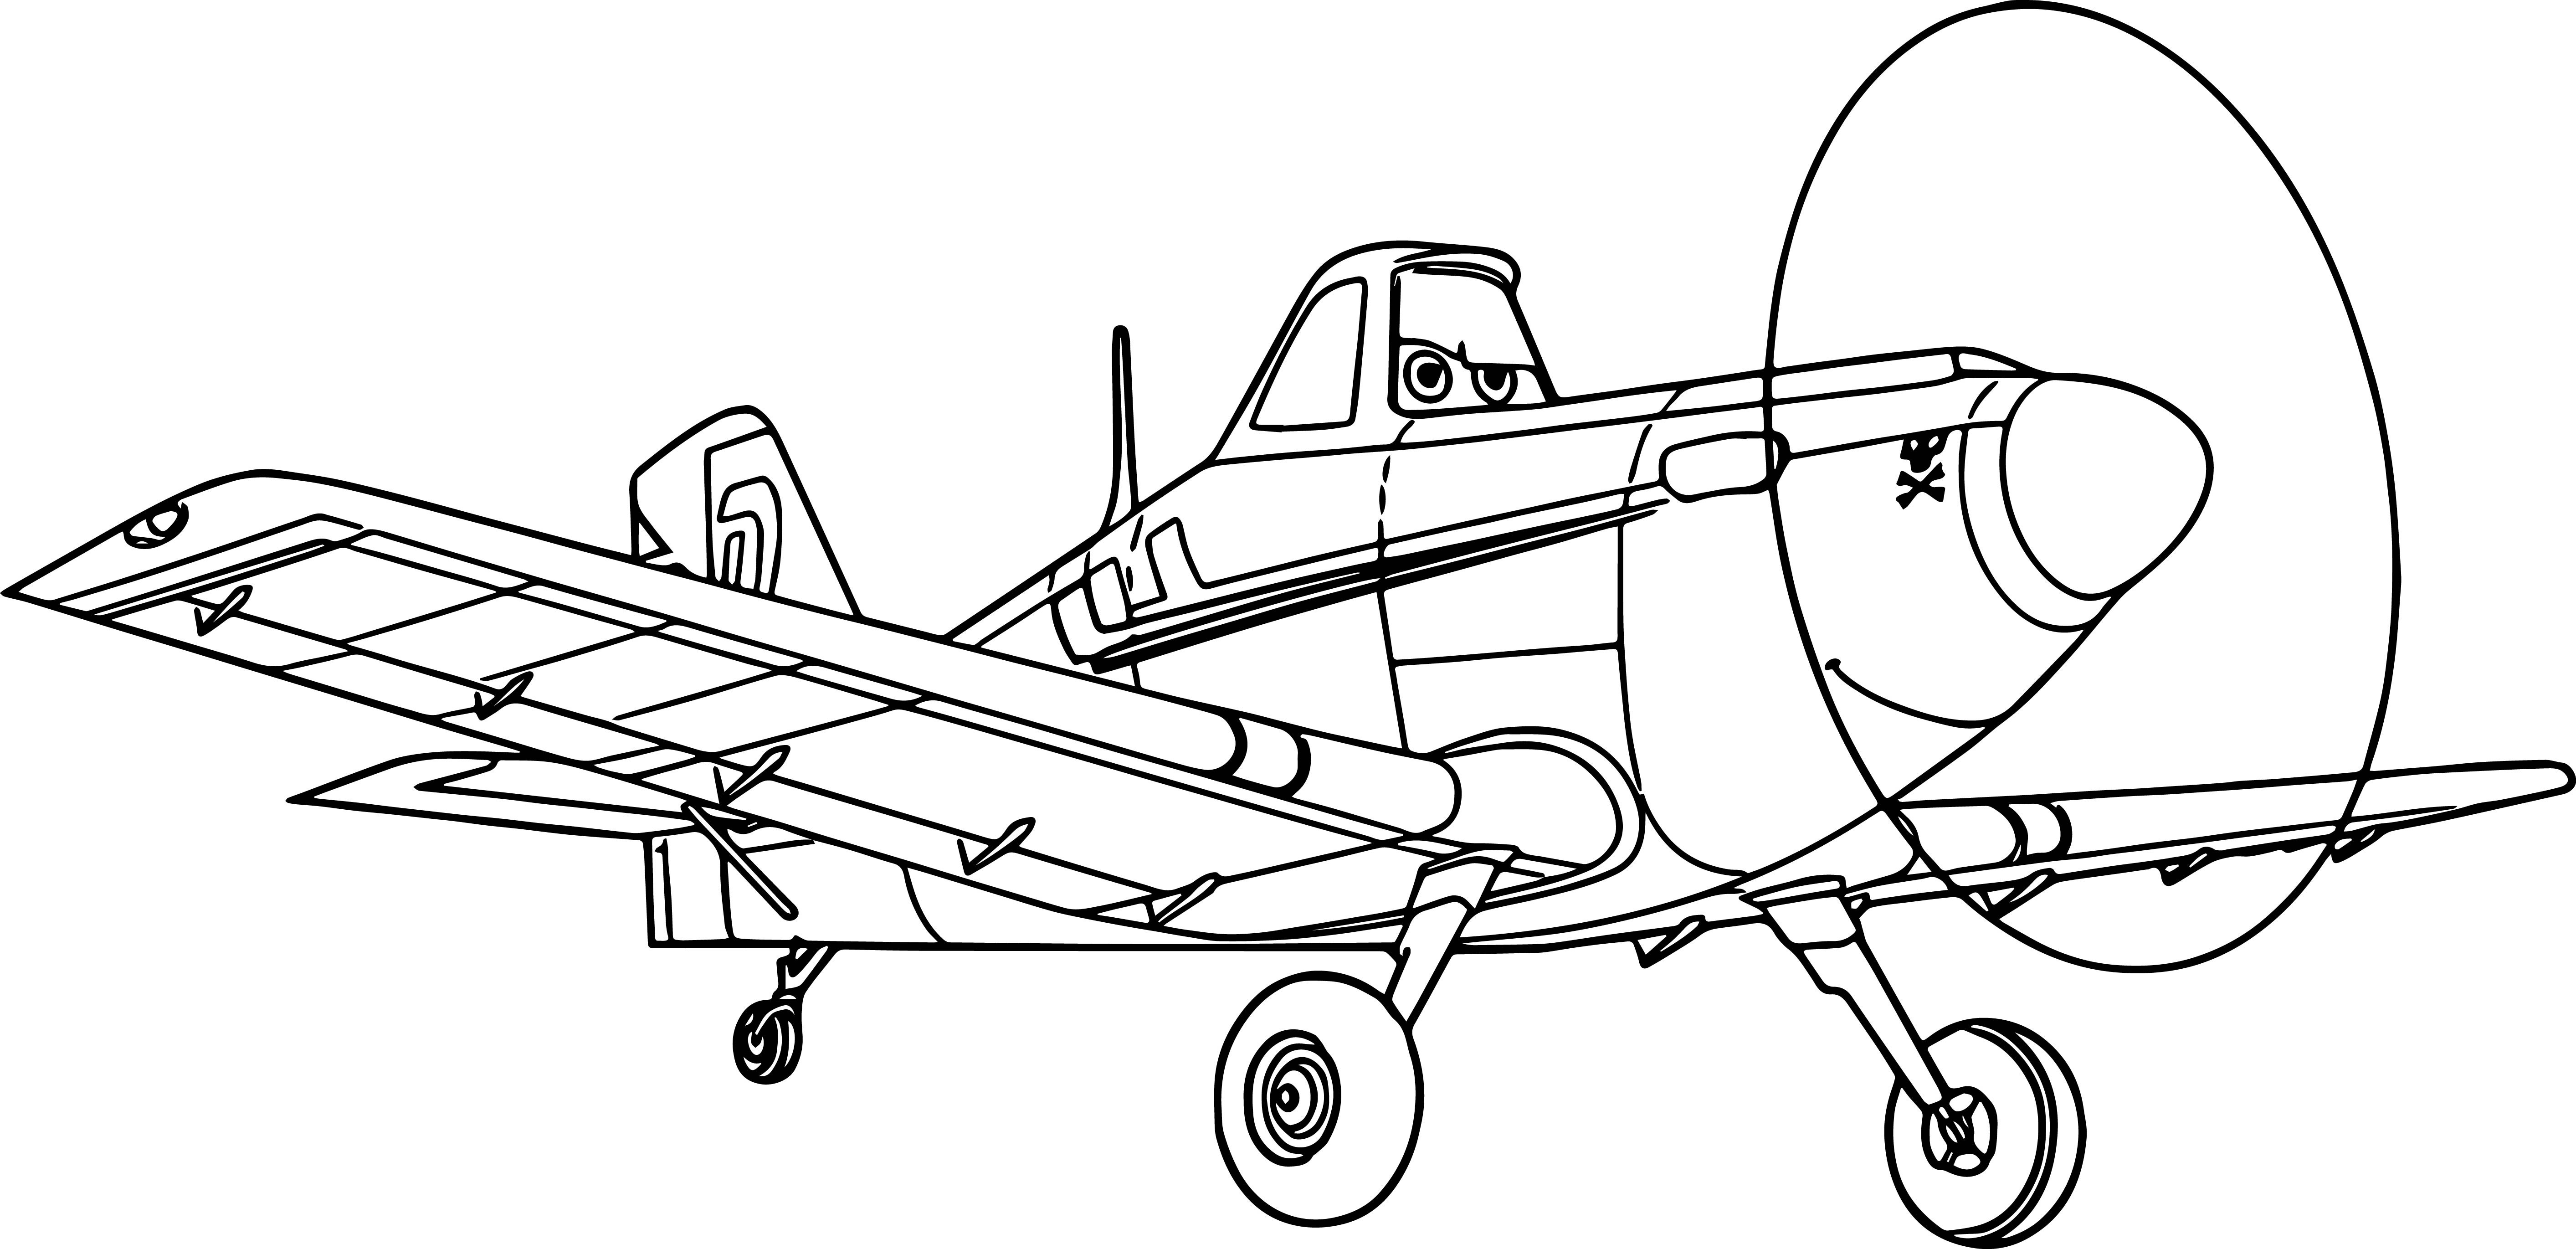 Best ideas about Disney Planes Coloring Pages For Kids . Save or Pin Disney Planes Coloring Pages Now.